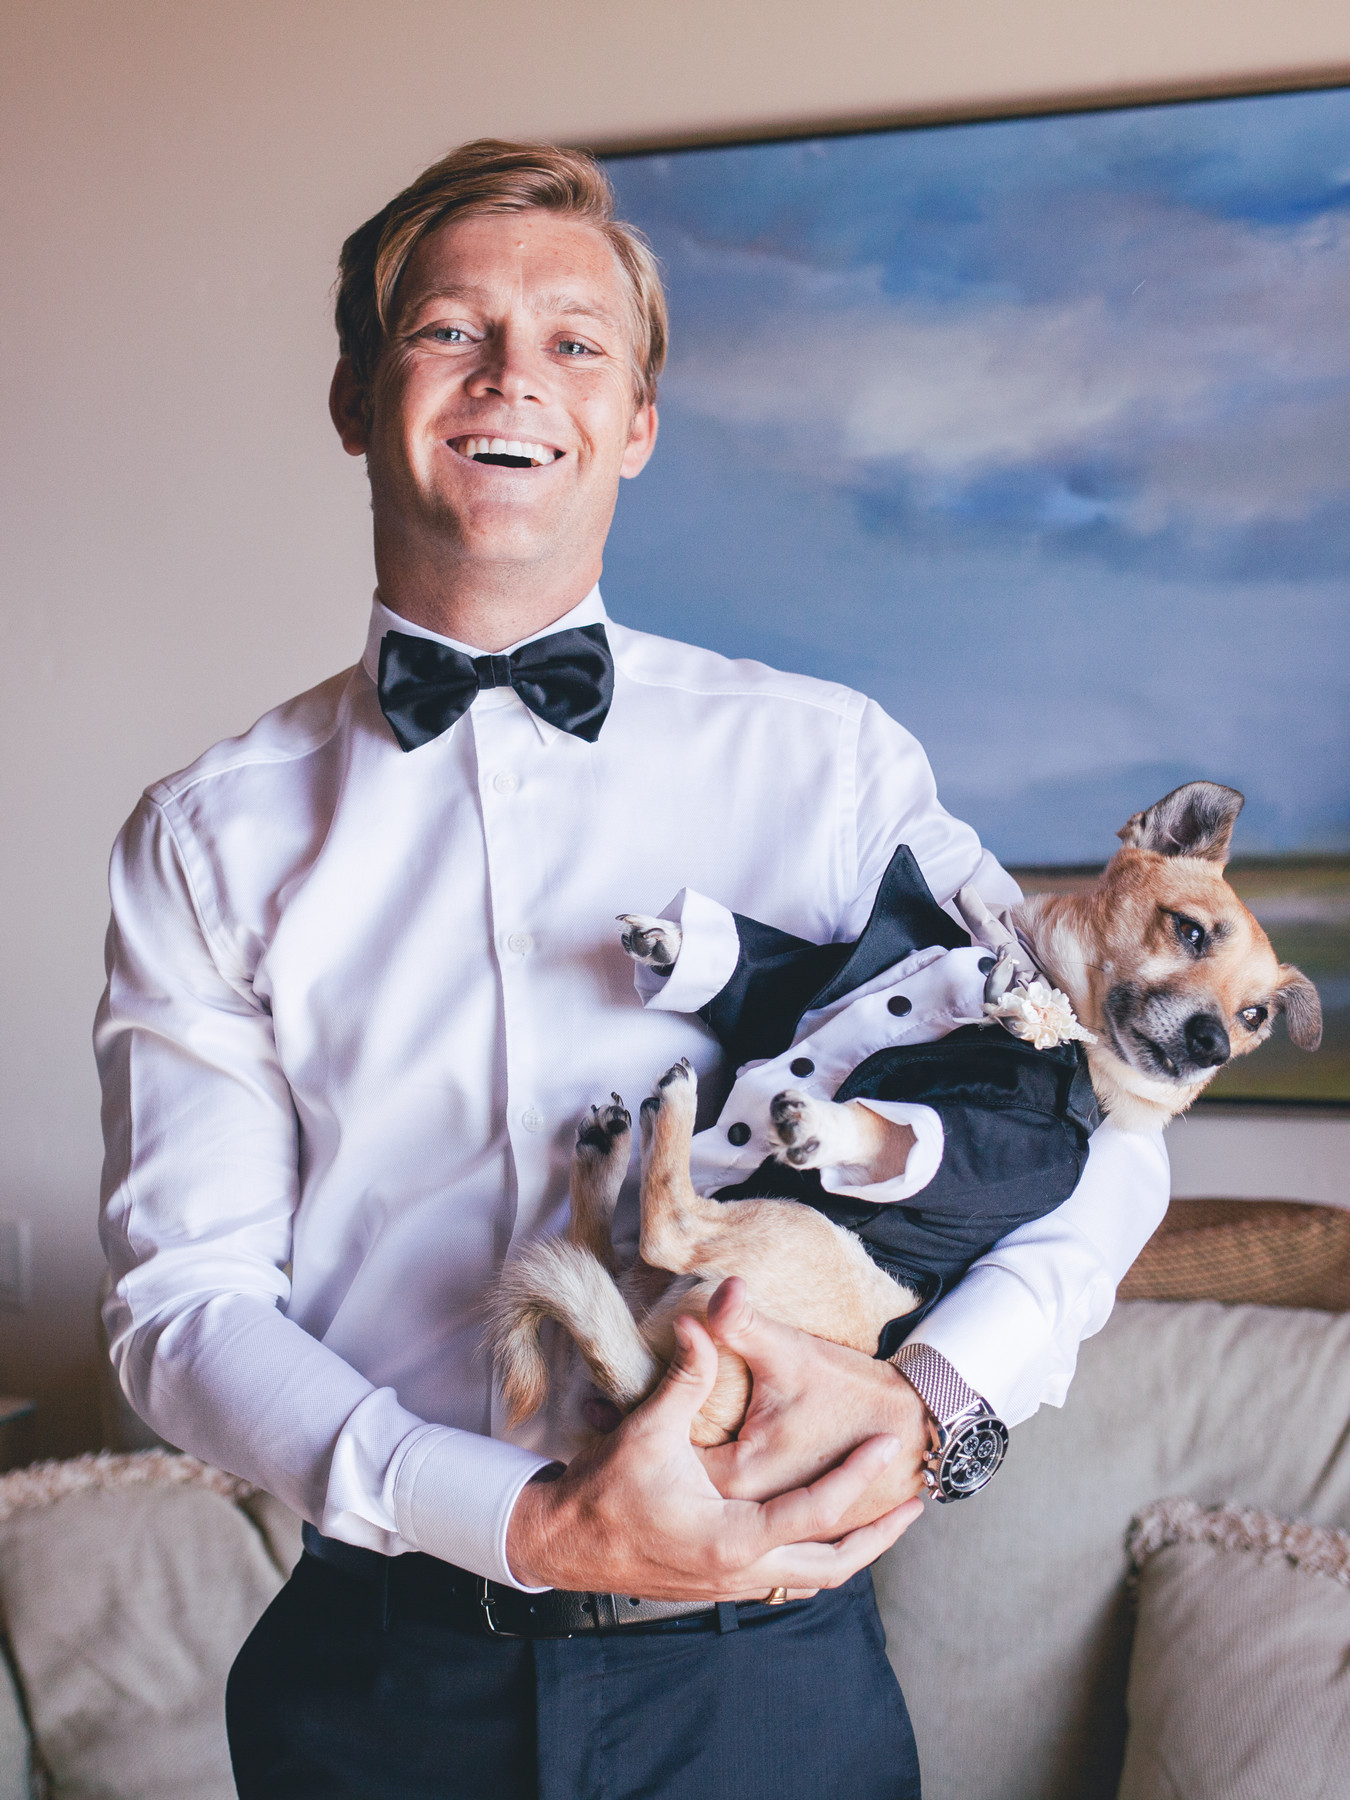 Portrait of groom and puppy in tuxedo by John and Joseph Photography